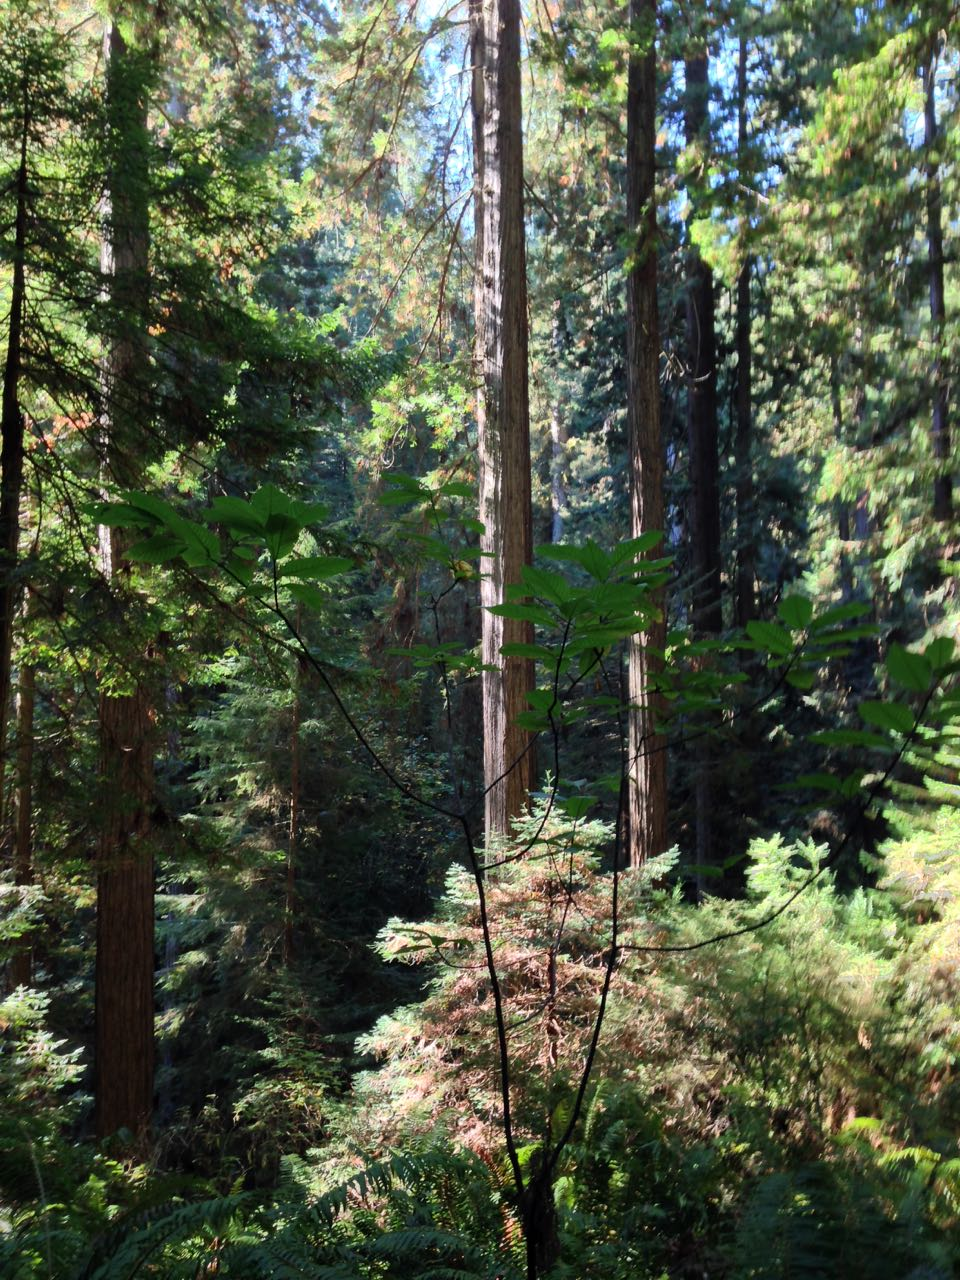 Redwoods 2017 10 08 224 Of 287